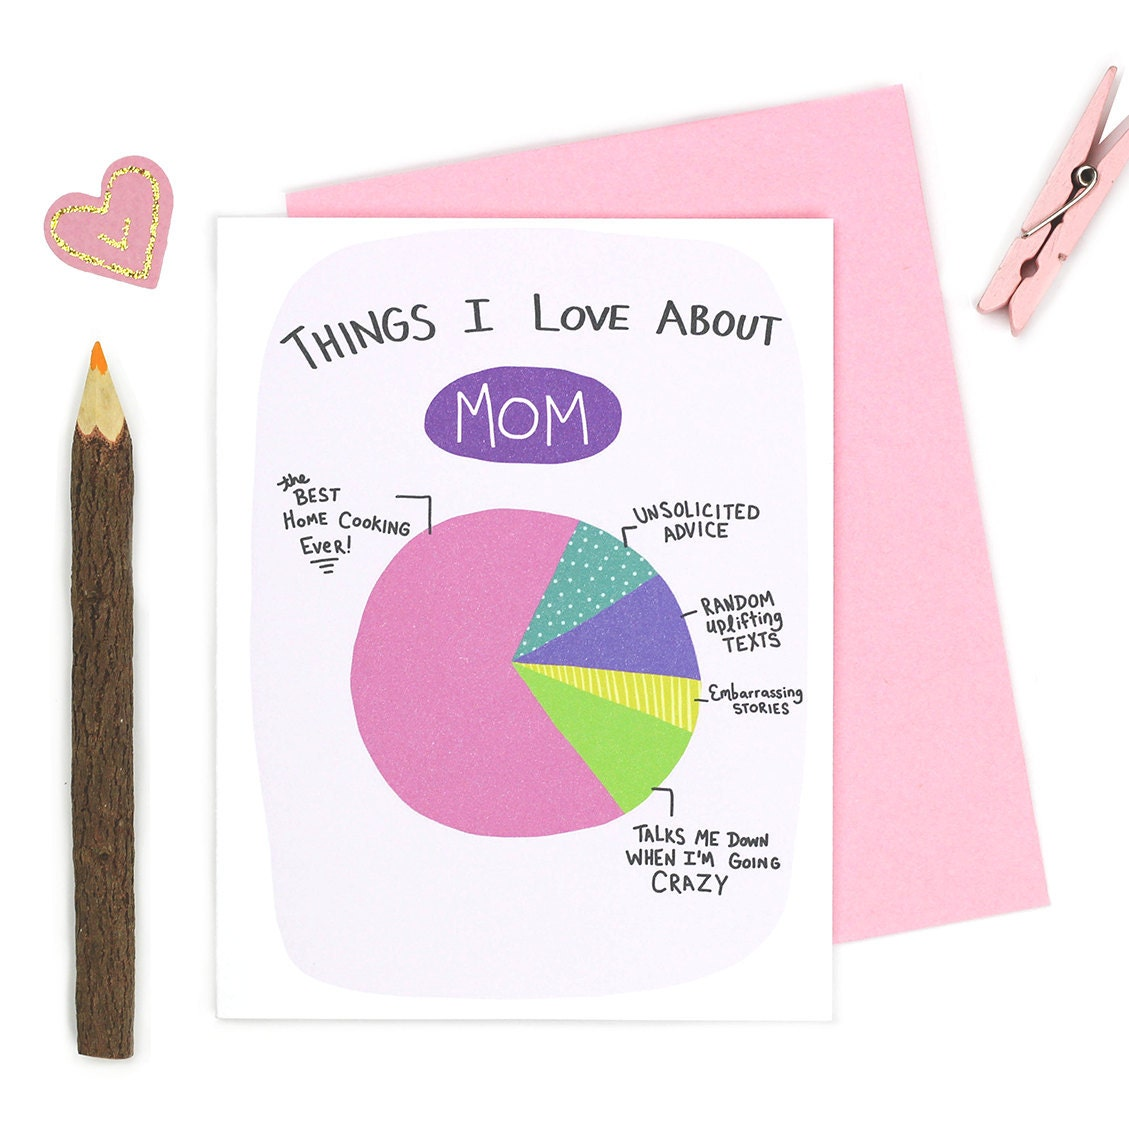 Things I Love About Mom Pie Chart Funny Mom Birthday Card